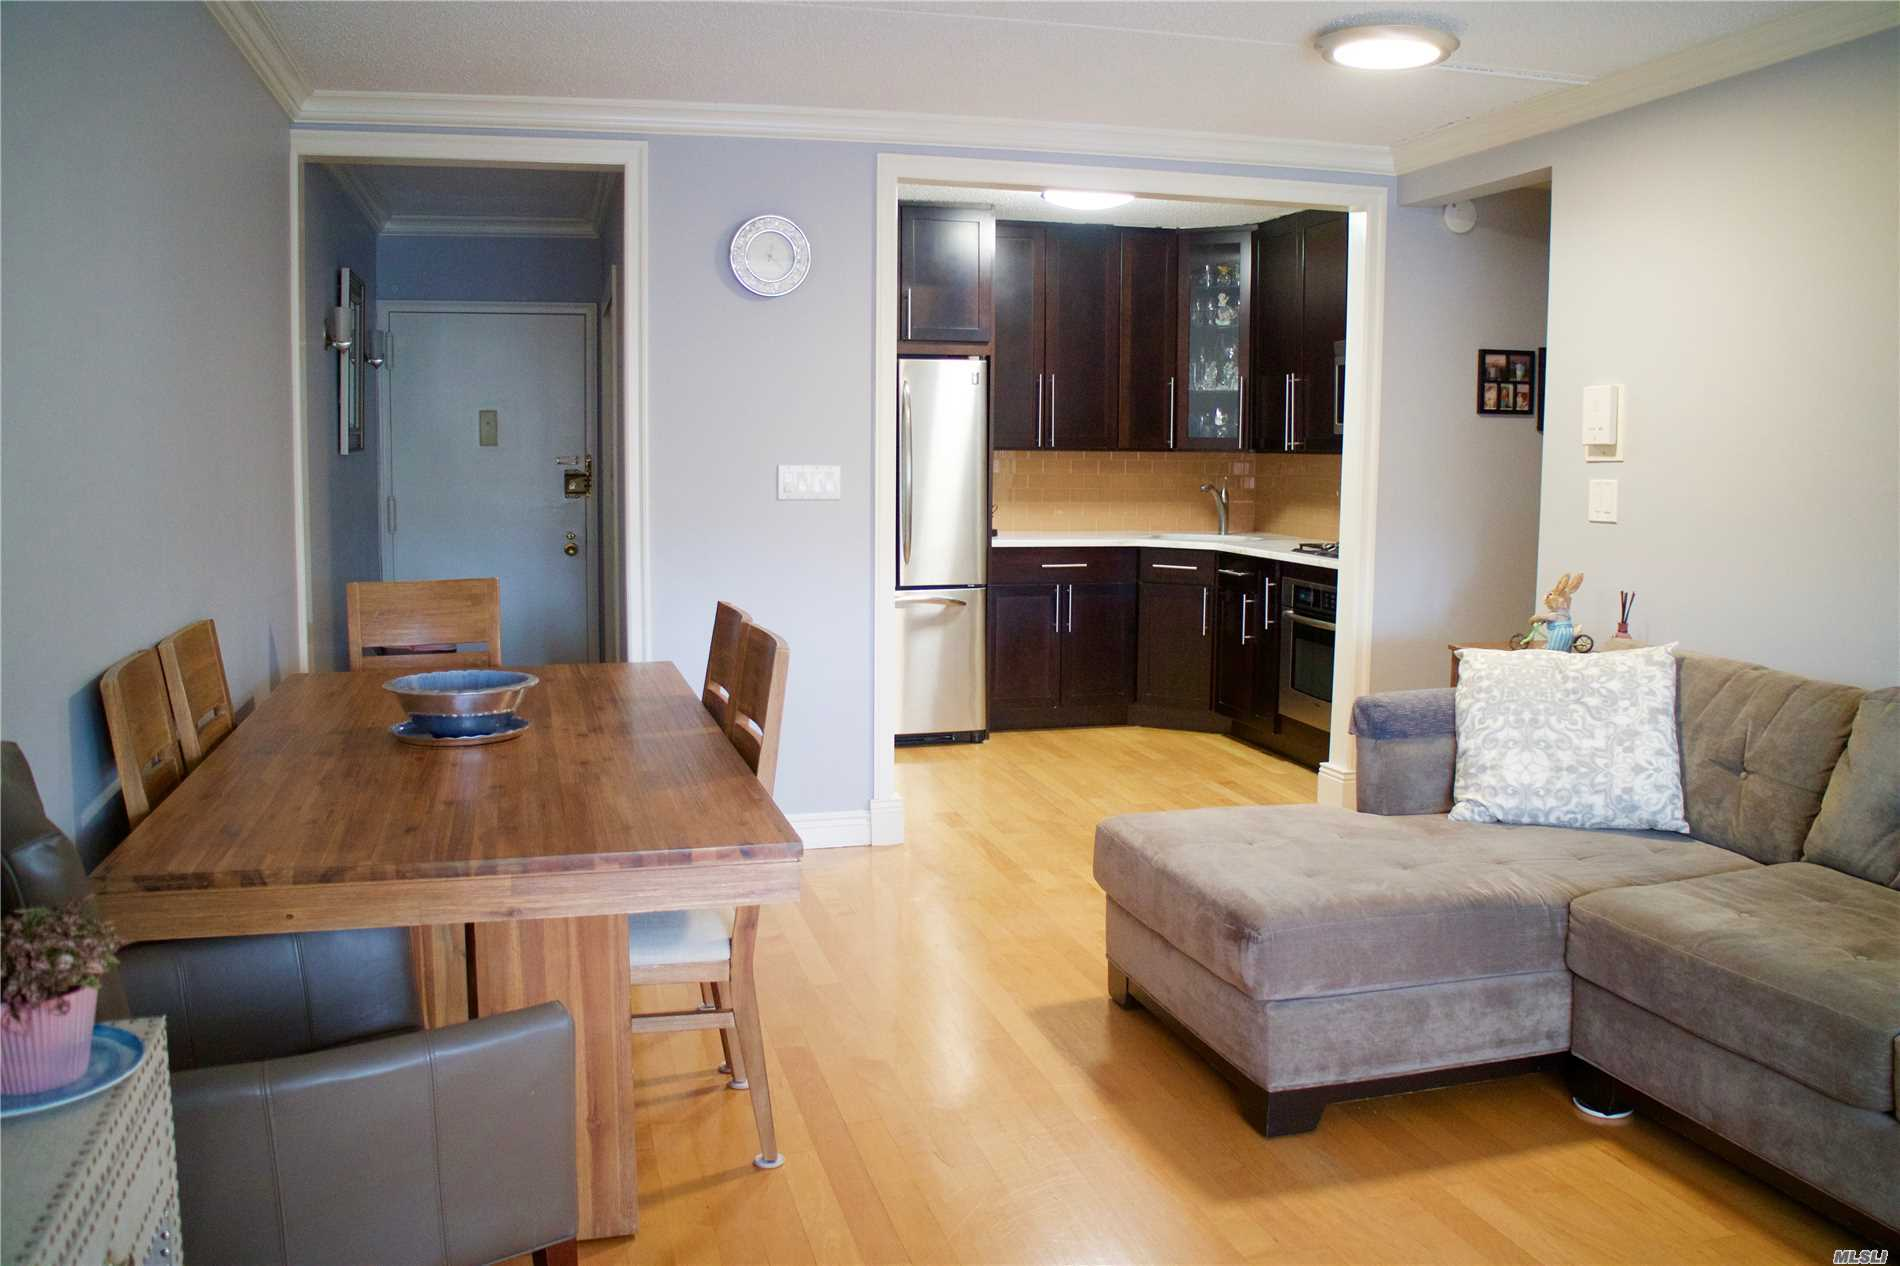 Beautifully renovated and exquisitely kept 2 bedrm, 1.5 bathrm condo in Middle Village North with an indoor parking spot + balcony Bright & sunny apt features Oak wood floors, crown molding marble countertop, custom cabinets, SS appliances, & many more upgrades. Zoned for PS 128.. Ideally located blocks to Juniper Valley Park, .3 mile to M train, Q54 & Q38 buses. *** Current tax abatement: taxes are discounted $1, 122.00 a year for primary residents, needs to reapply yearly.